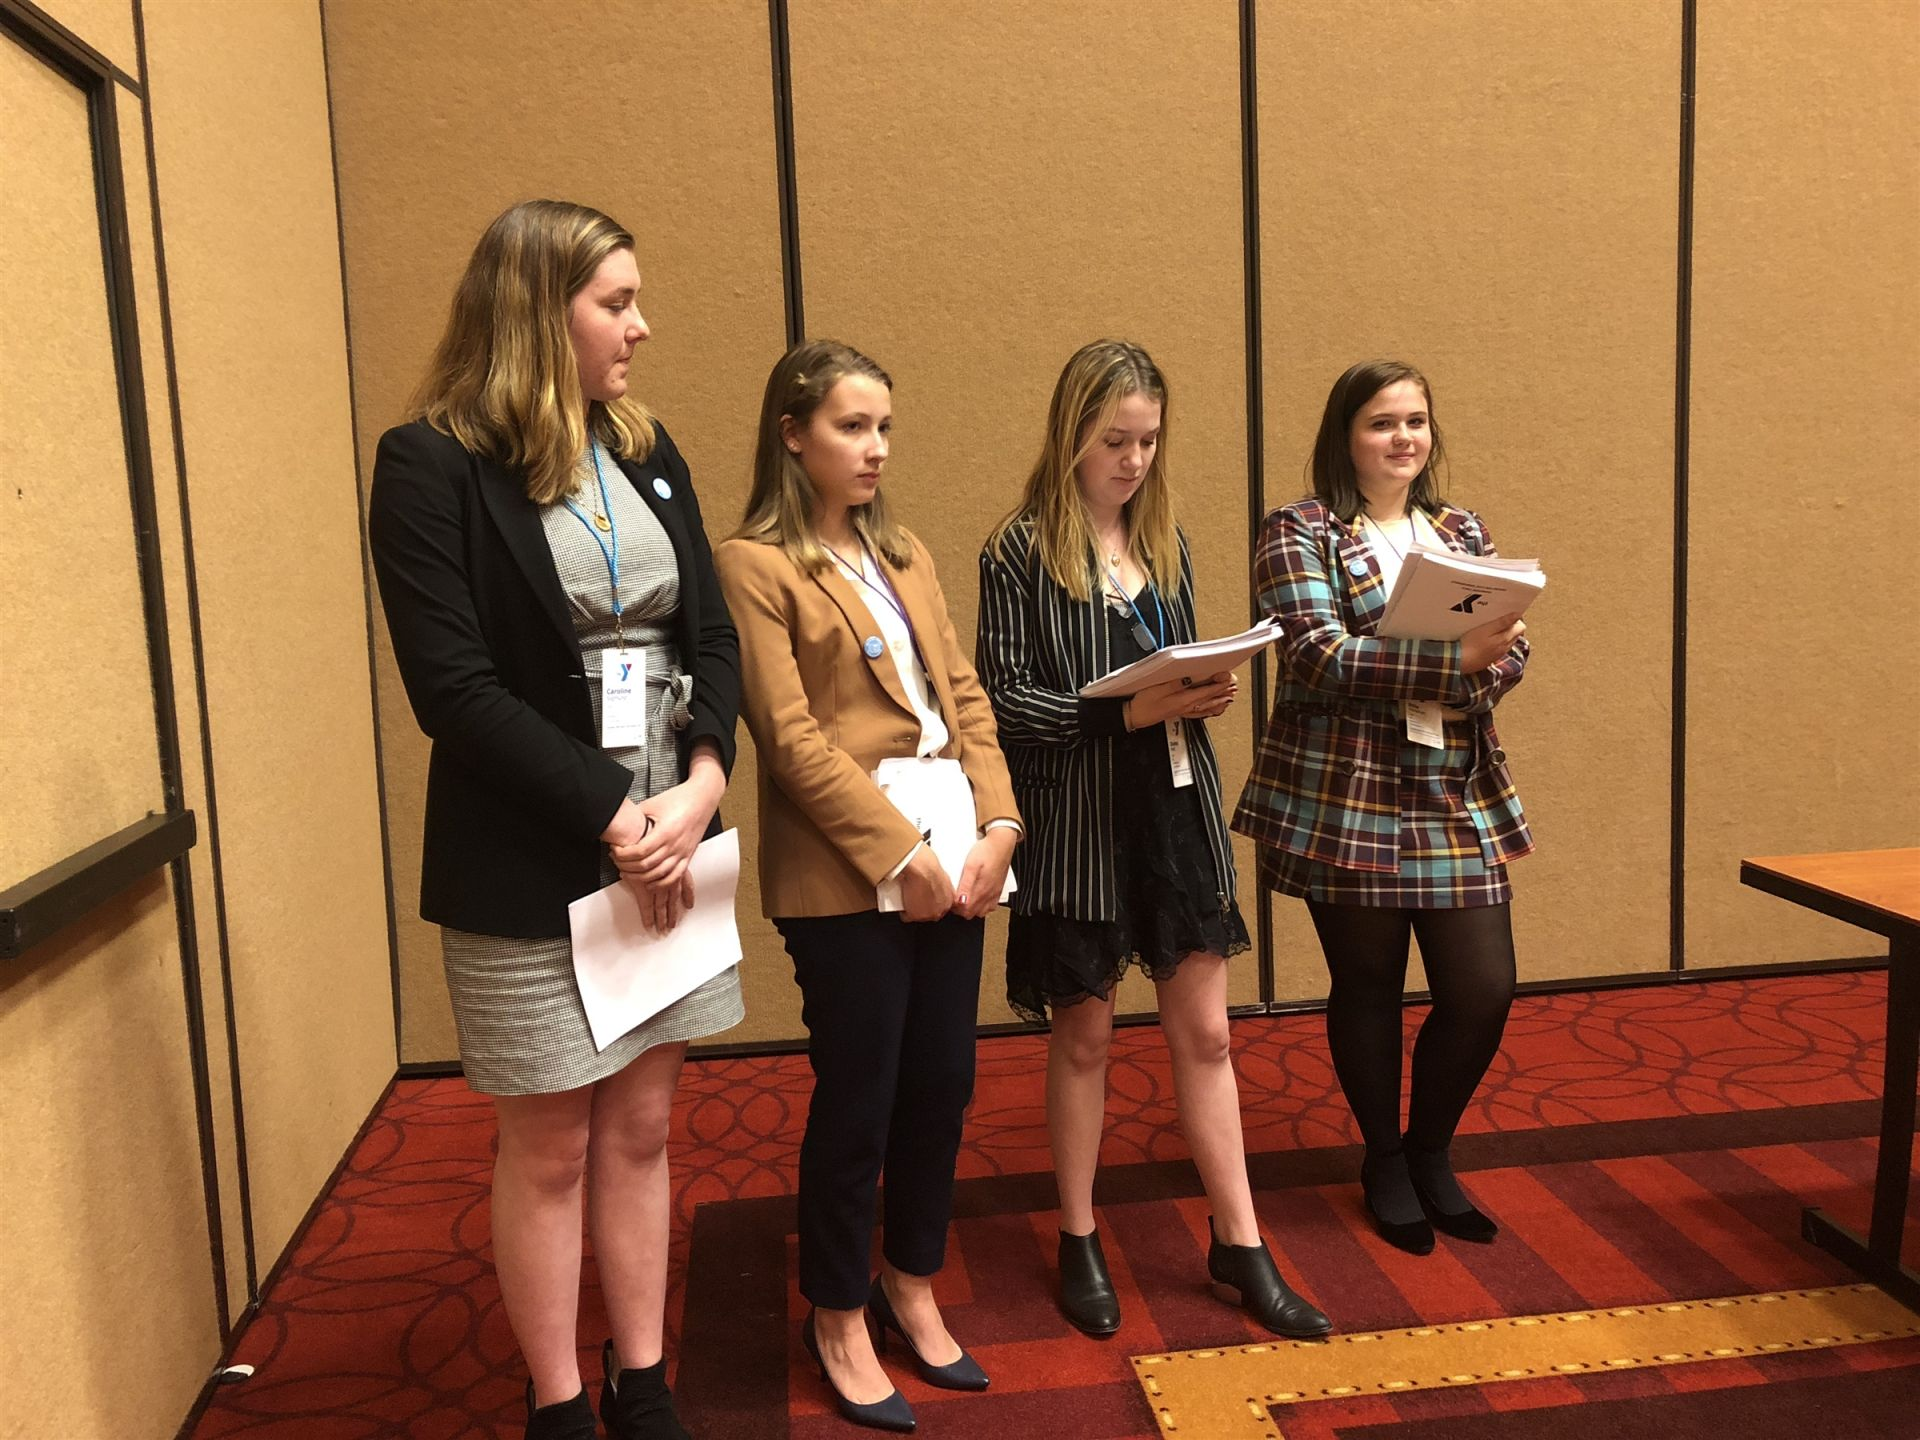 Romania (L-R Sigmund, Rieniets, Hall, Hollahan) presents their award-winning resolution to their committee.